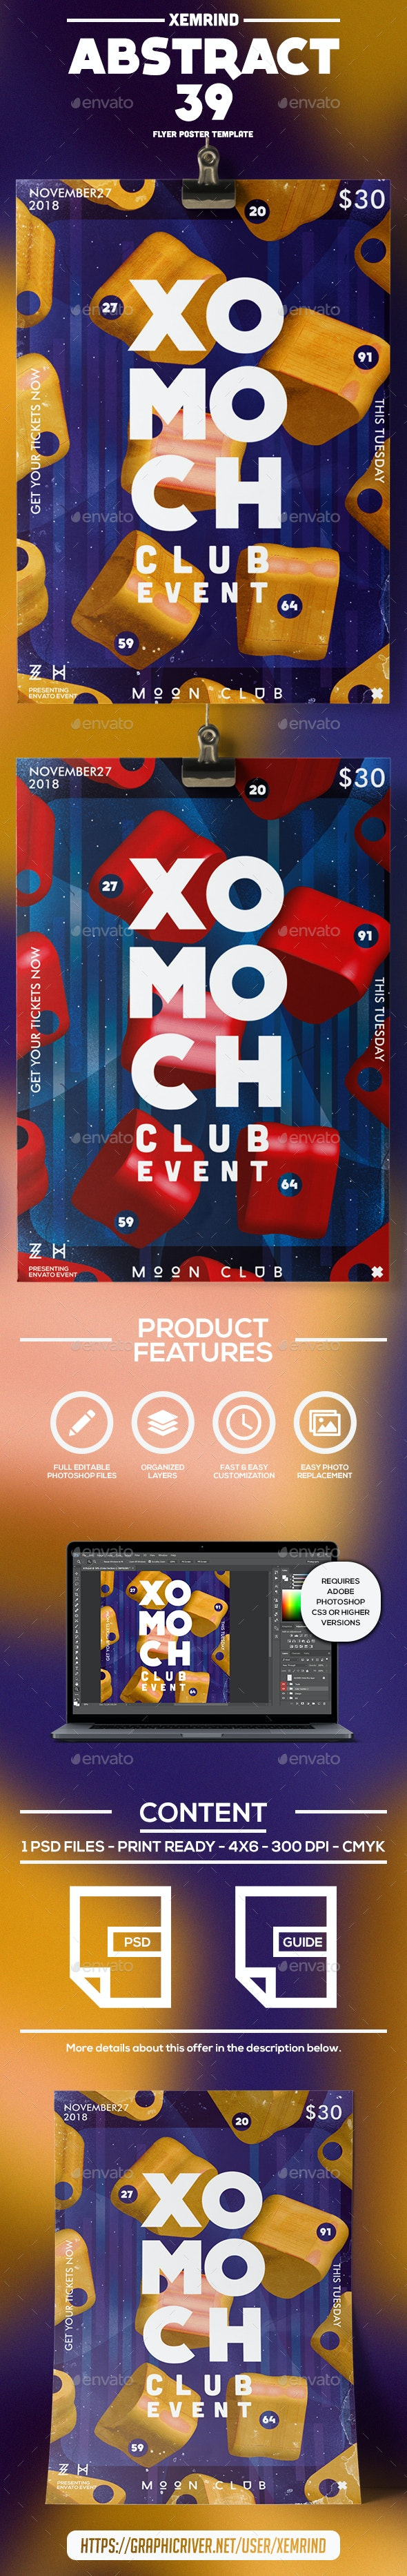 Abstract 39 Flyer/Poster Template - Events Flyers